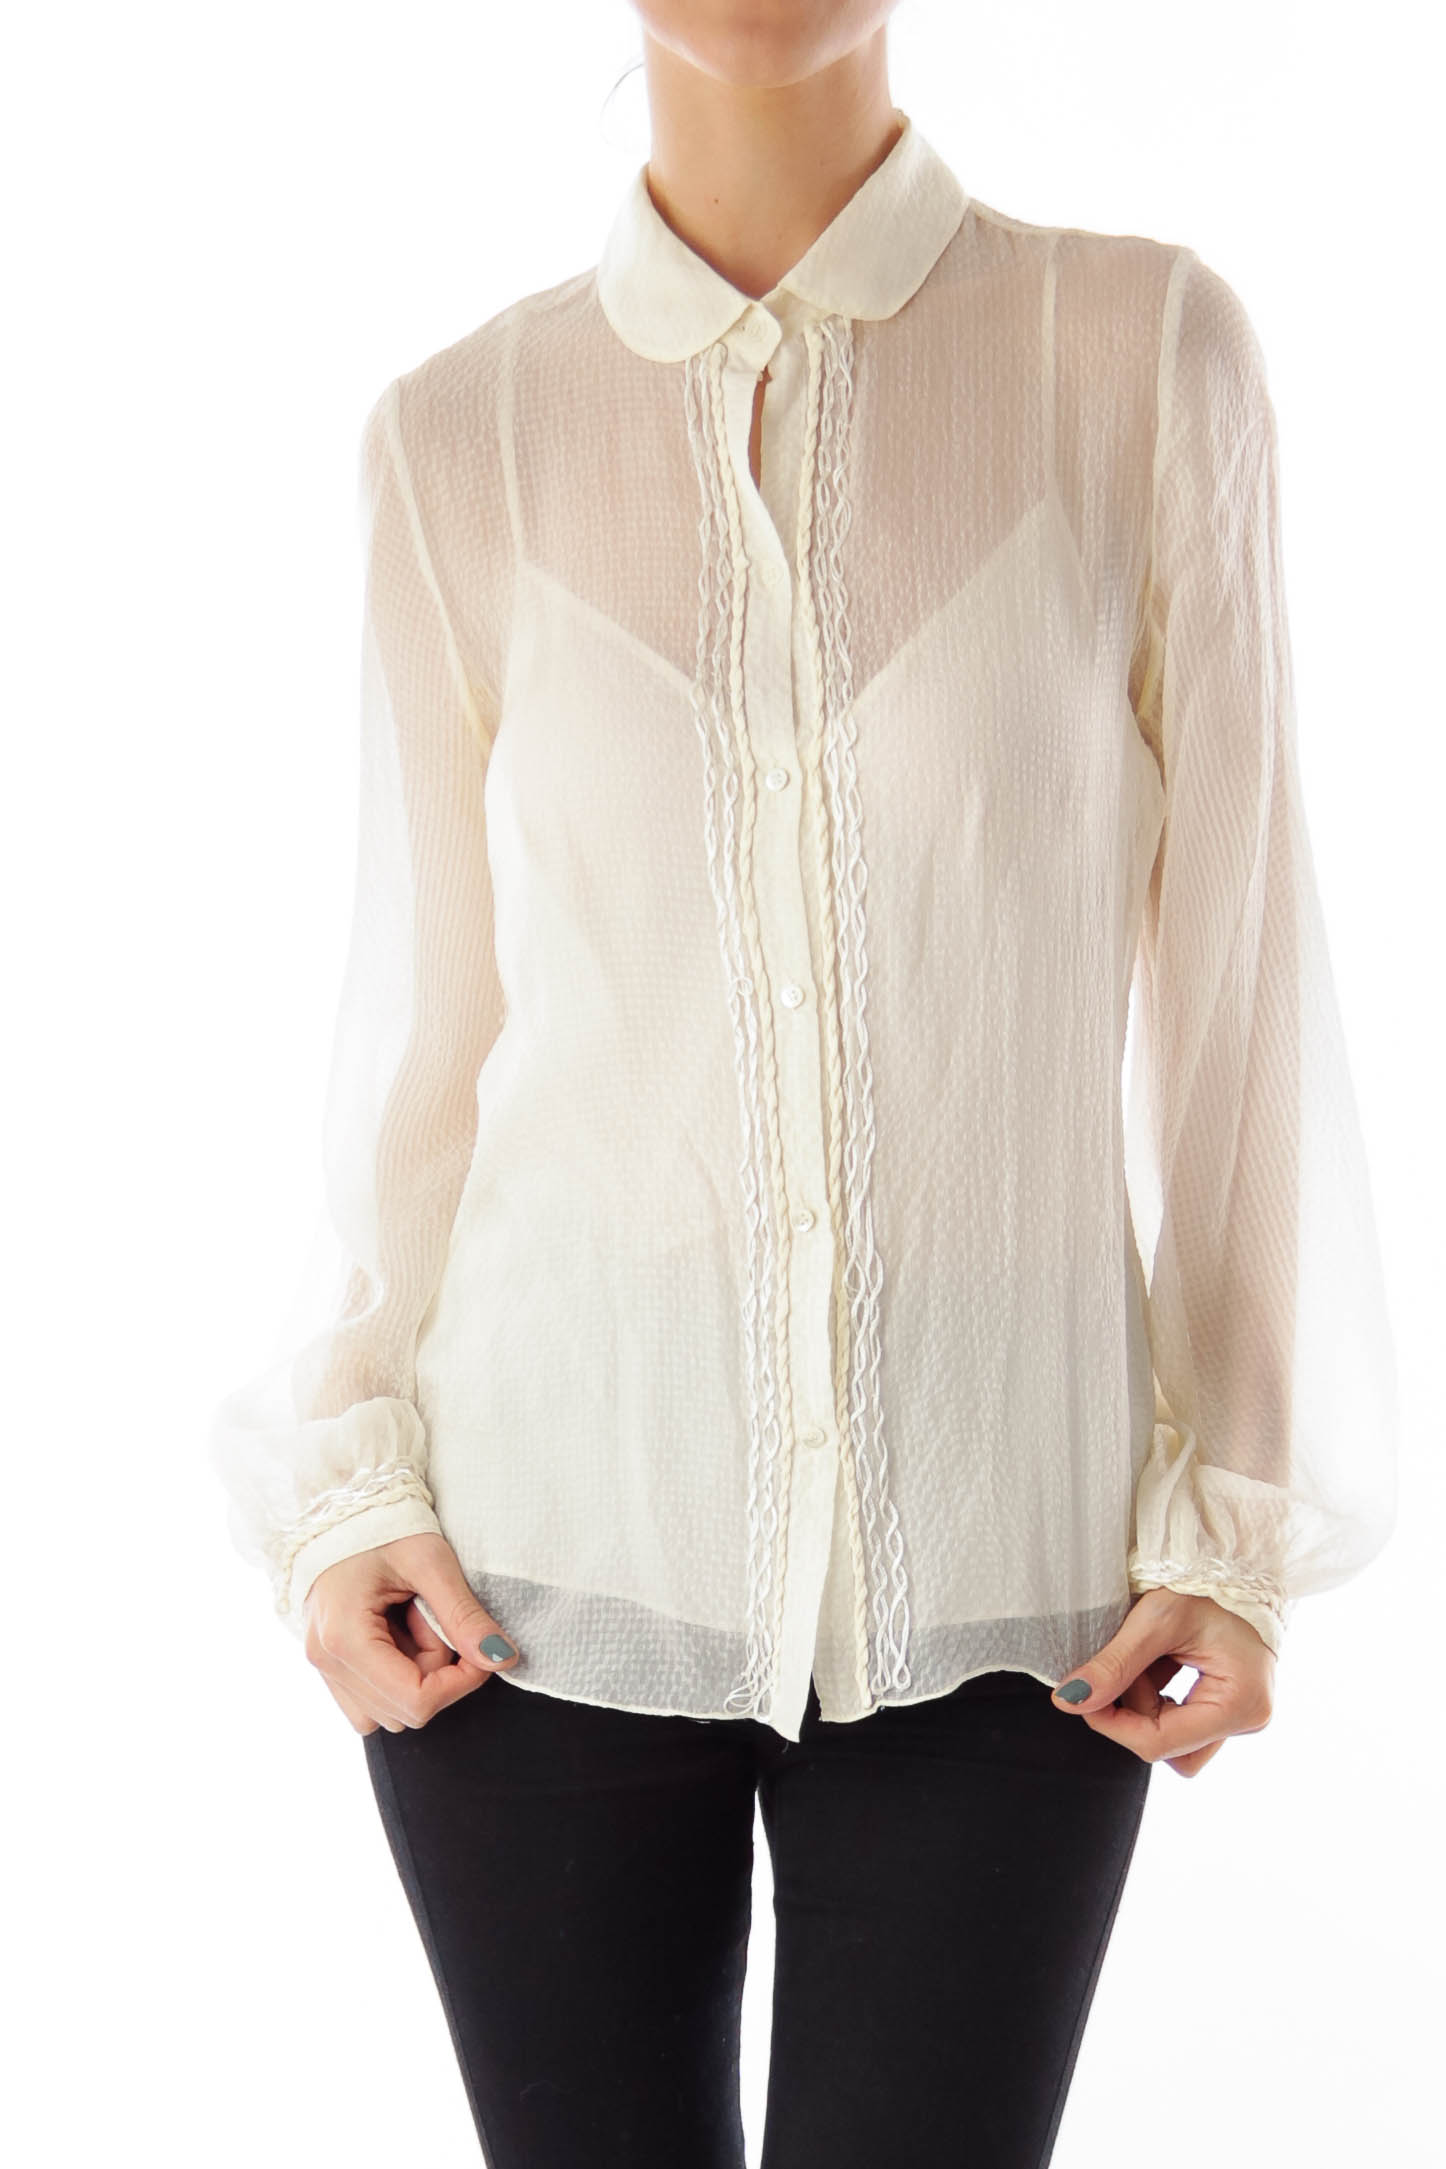 Buy New Womens Plus Size Ivory/Cream Tops at Macy's. Shop the Latest Plus Size Blouses & Shirts for Women Online at xajk8note.ml FREE SHIPPING AVAILABLE! Cuddl Duds Plus Size Softwear Long-Sleeve V-Neck Top $ Free ship at $ Enjoy Free Shipping at $49! See exclusions.